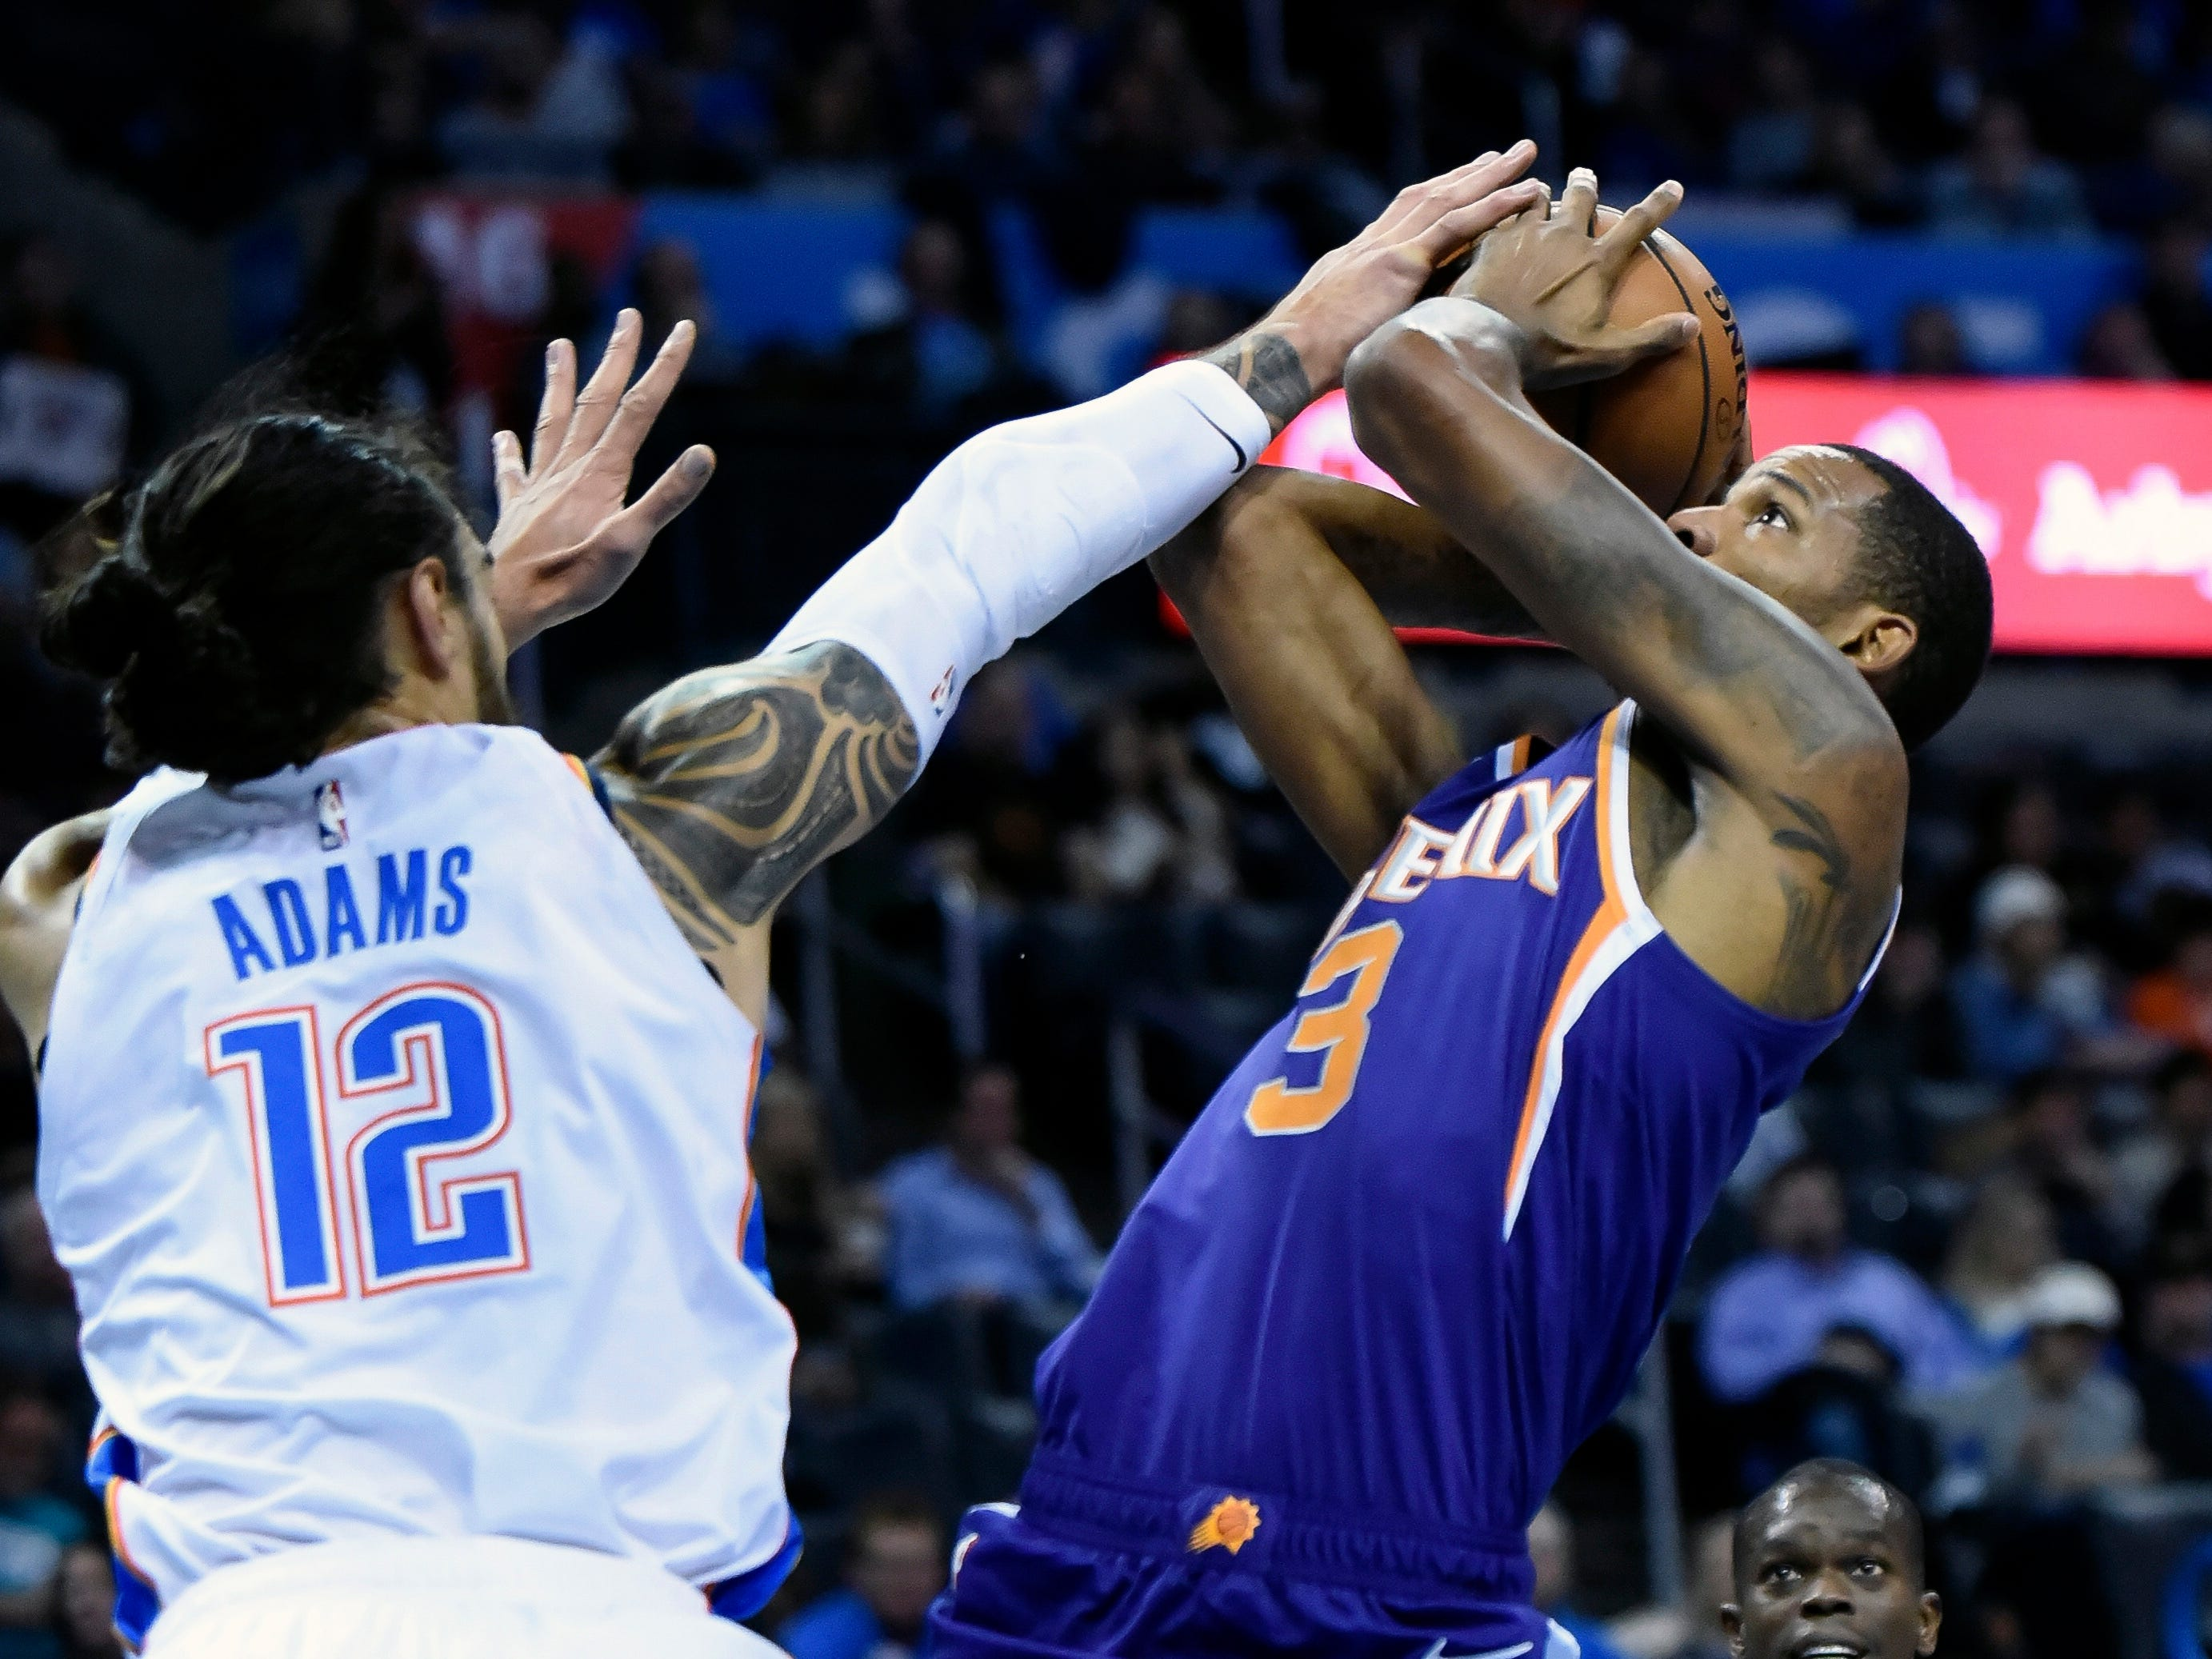 Oklahoma City Thunder center Steven Adams (12) blocks a shot by Phoenix Suns forward Trevor Ariza (3) in the first half of an NBA basketball game in Oklahoma City, Monday, Nov. 12, 2018. (AP Photo/Kyle Phillips)